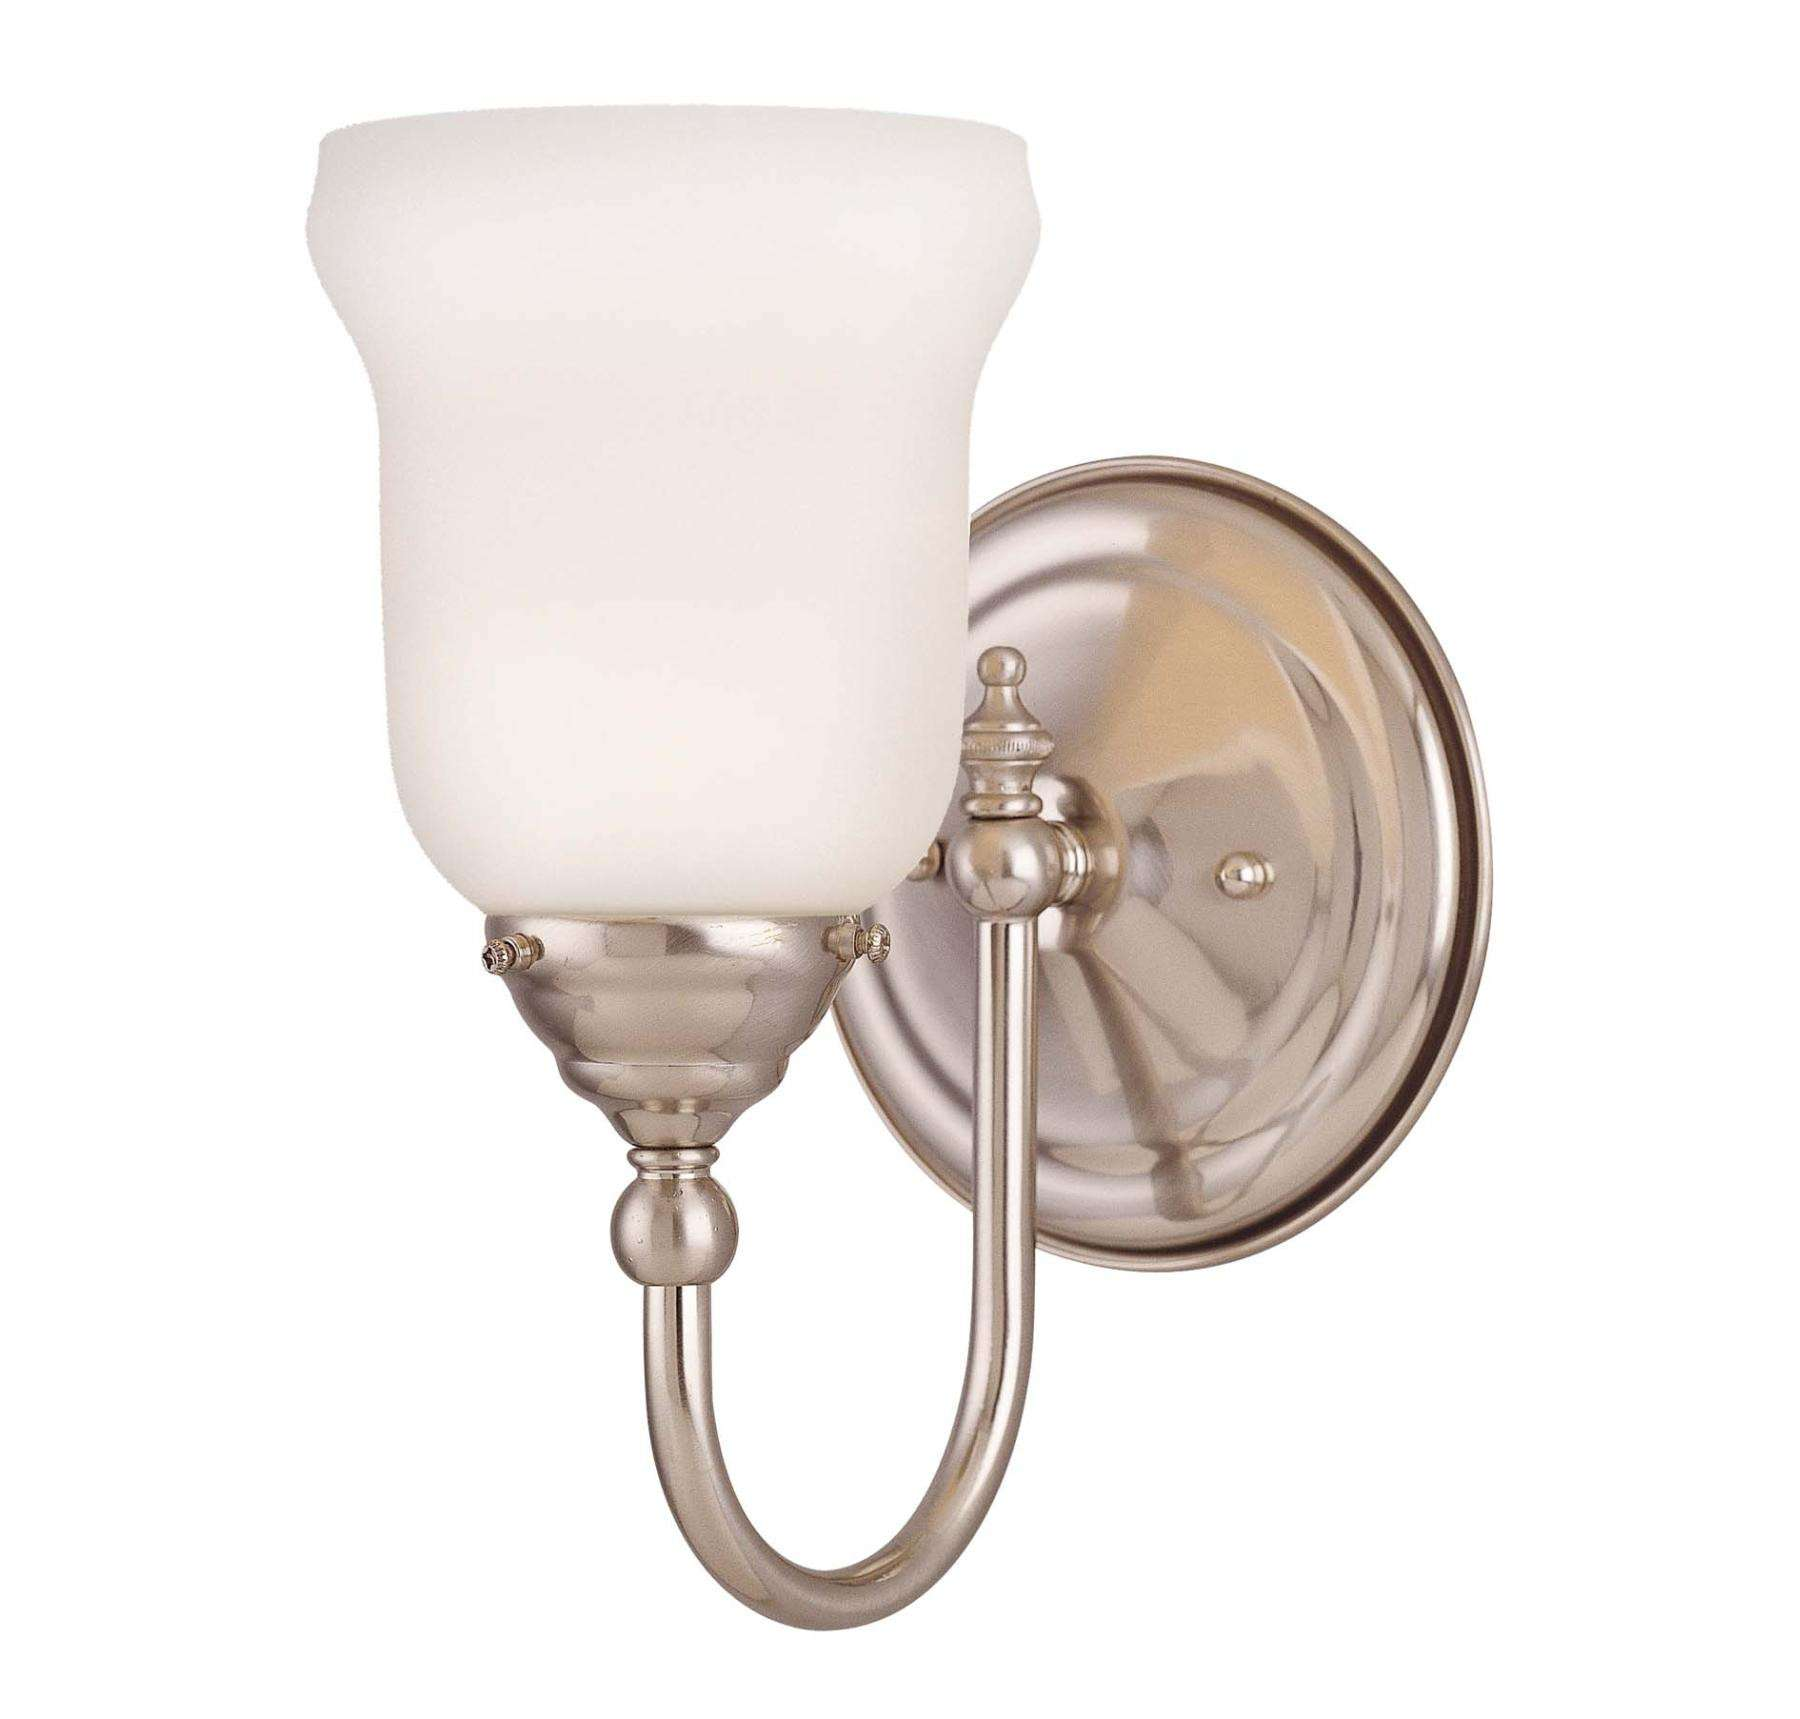 Savoy House 1062-1-SN Brunswick Bath 1 Light Sconce in Satin Nickel Finish (glass sold separately)